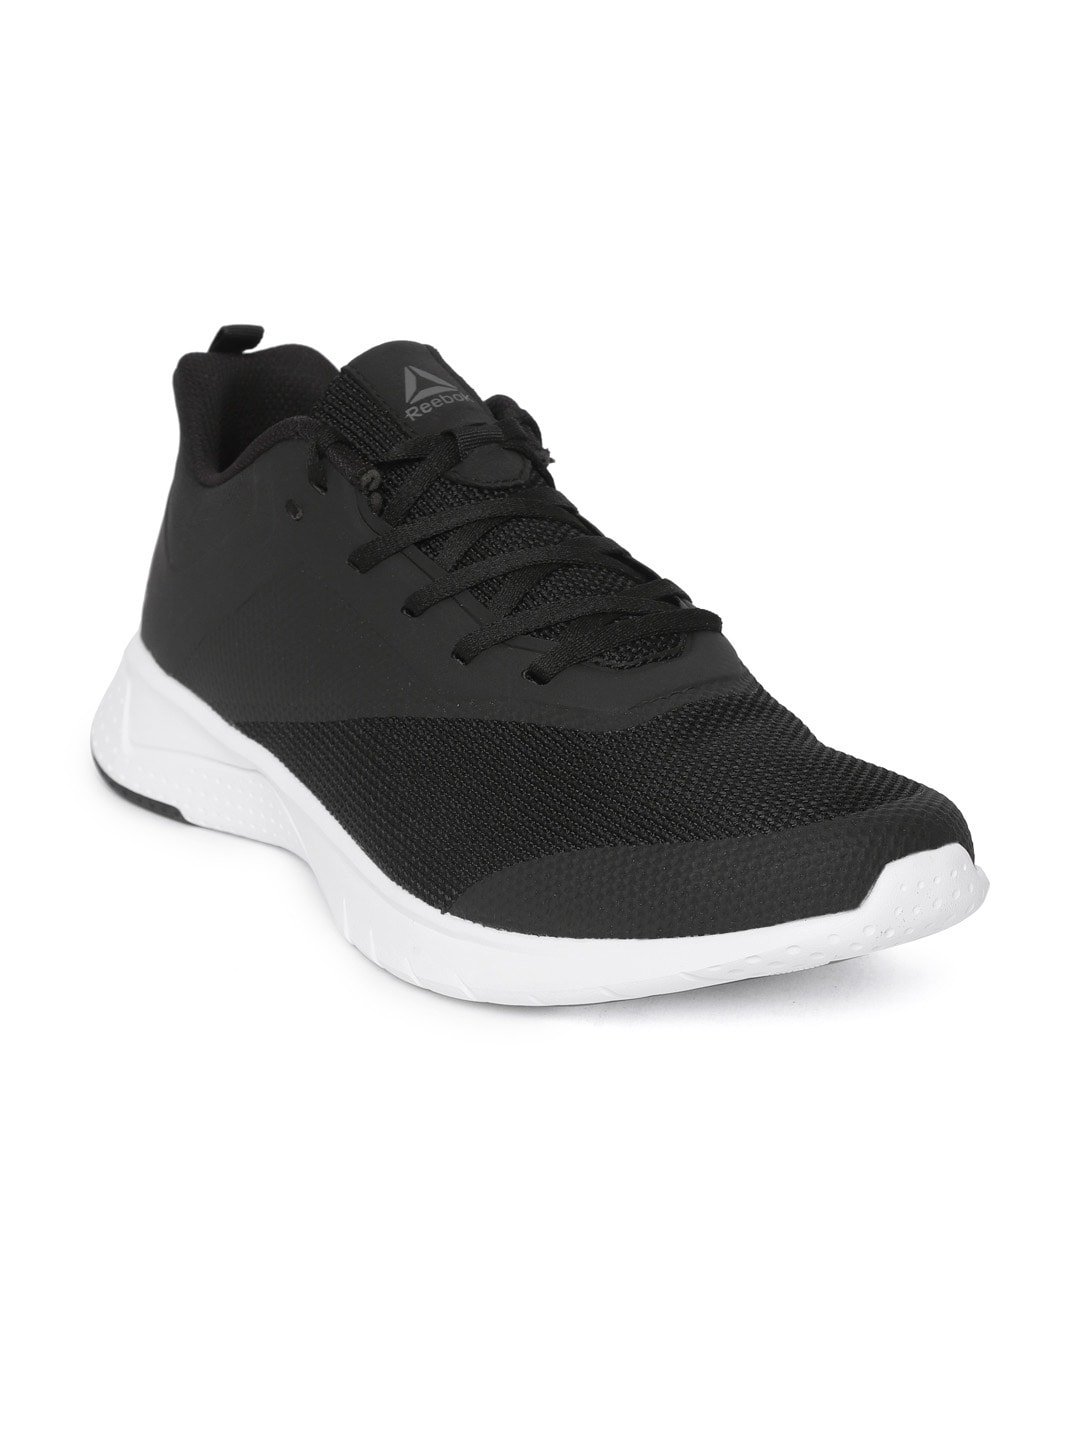 6fcb929ec4fa Reebok Sports Shoes - Buy Reebok Sports Shoes in India